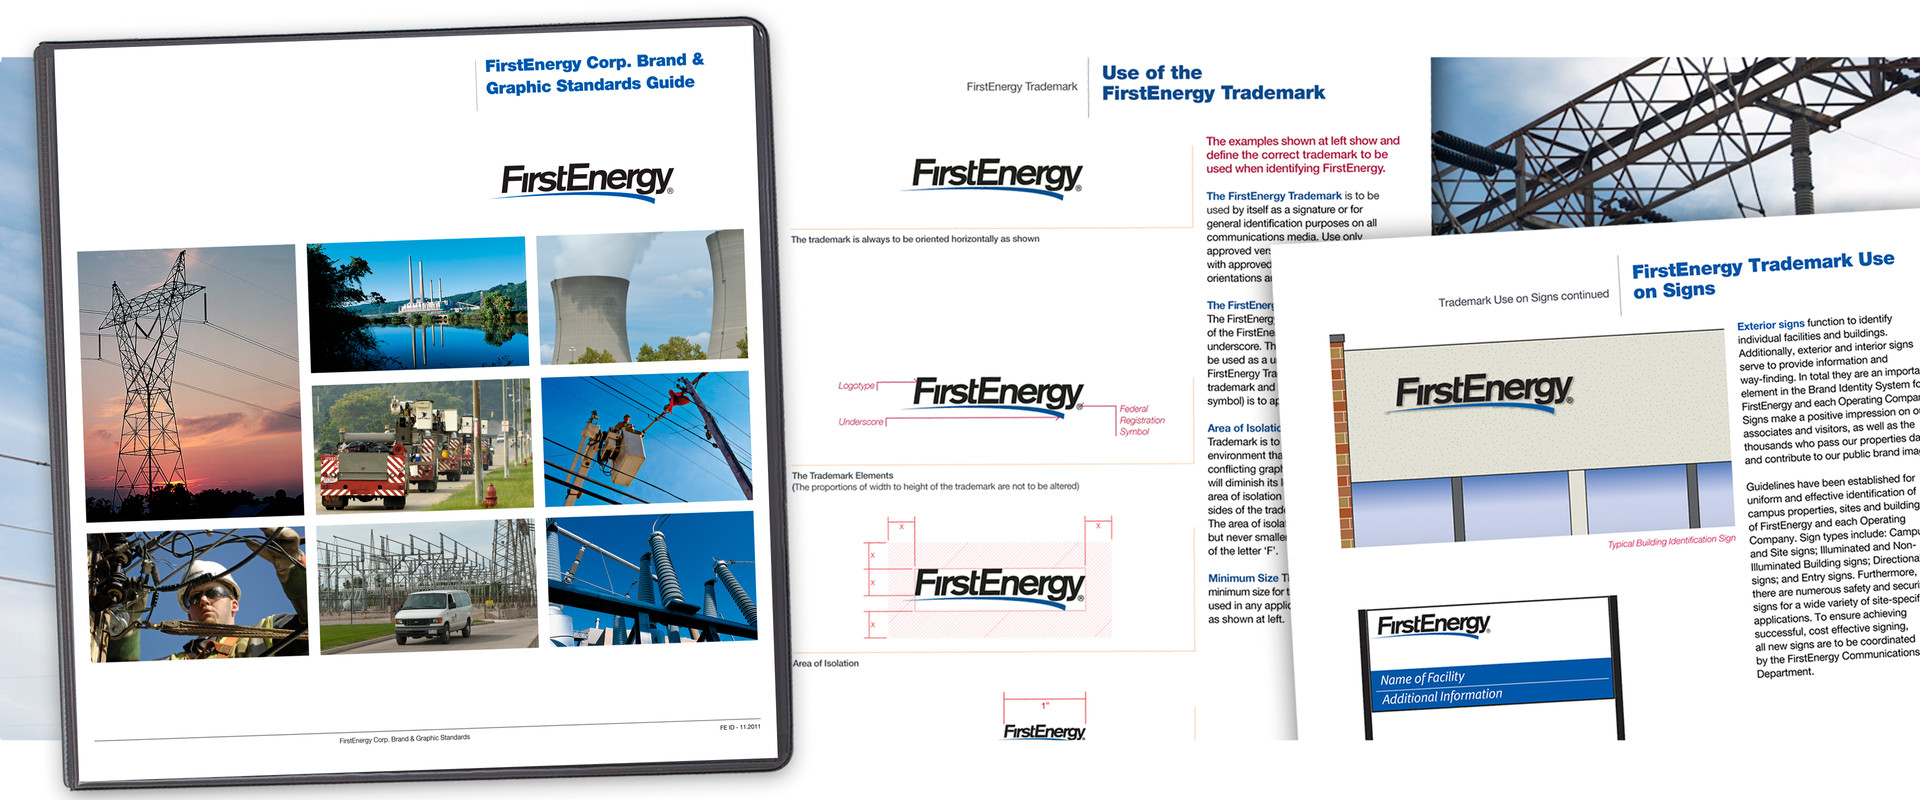 FirstEnergy Identity Guidelines